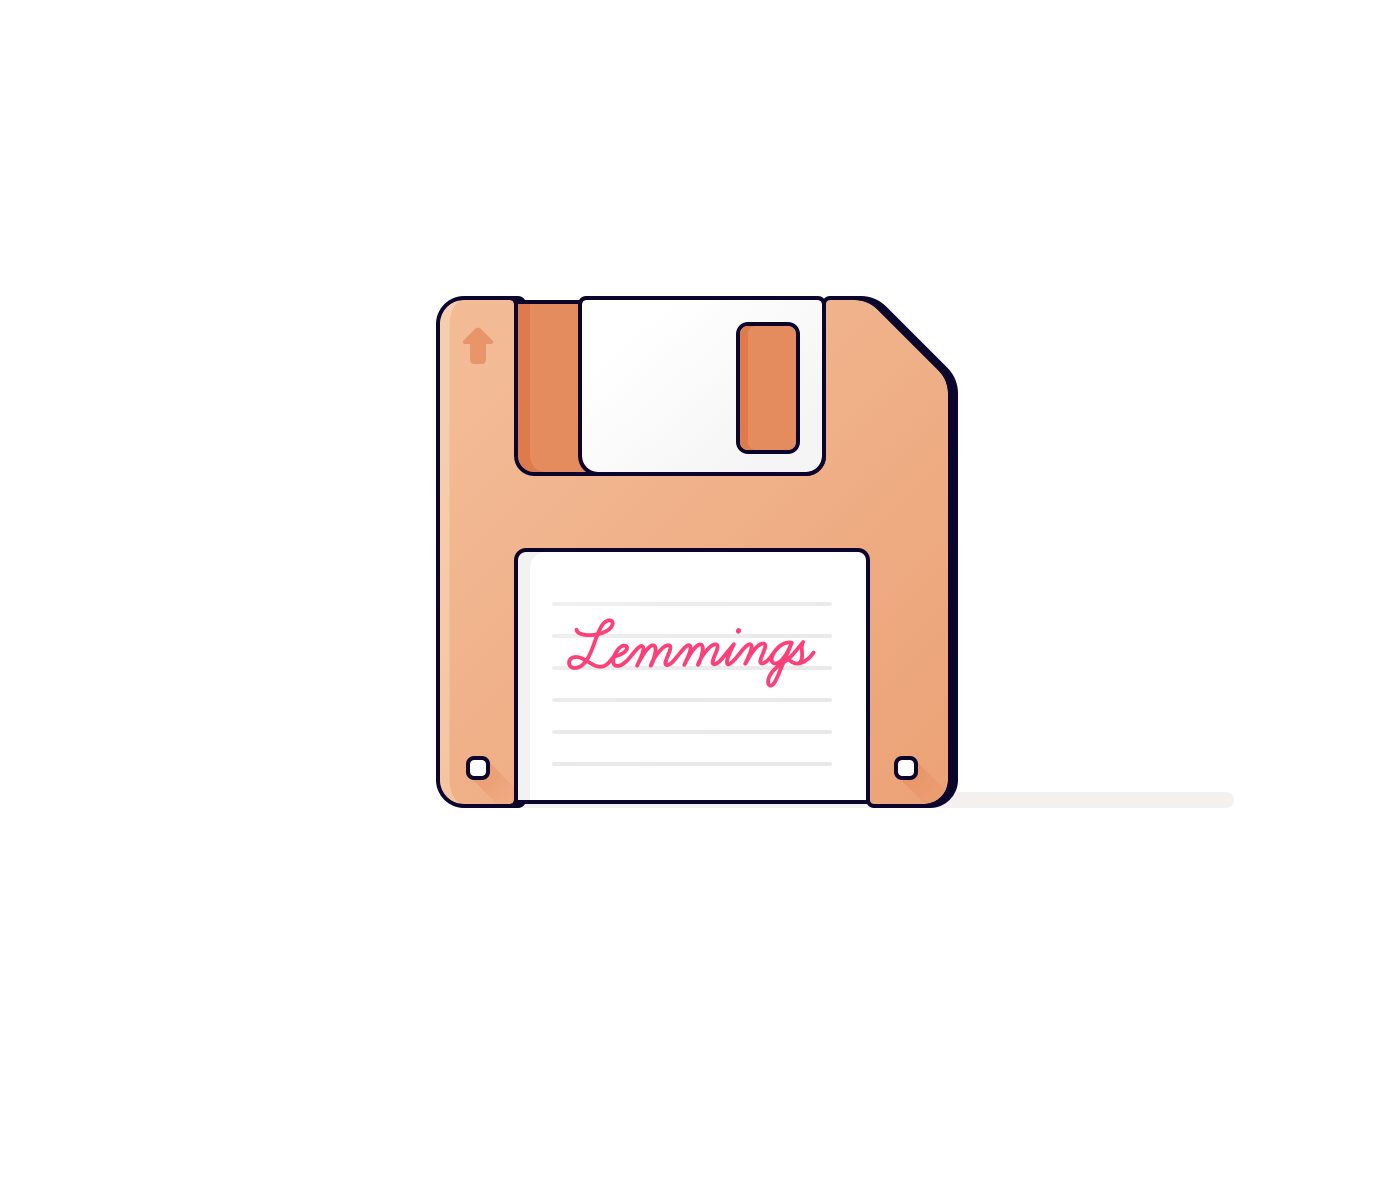 Floppy disk3@2x.png